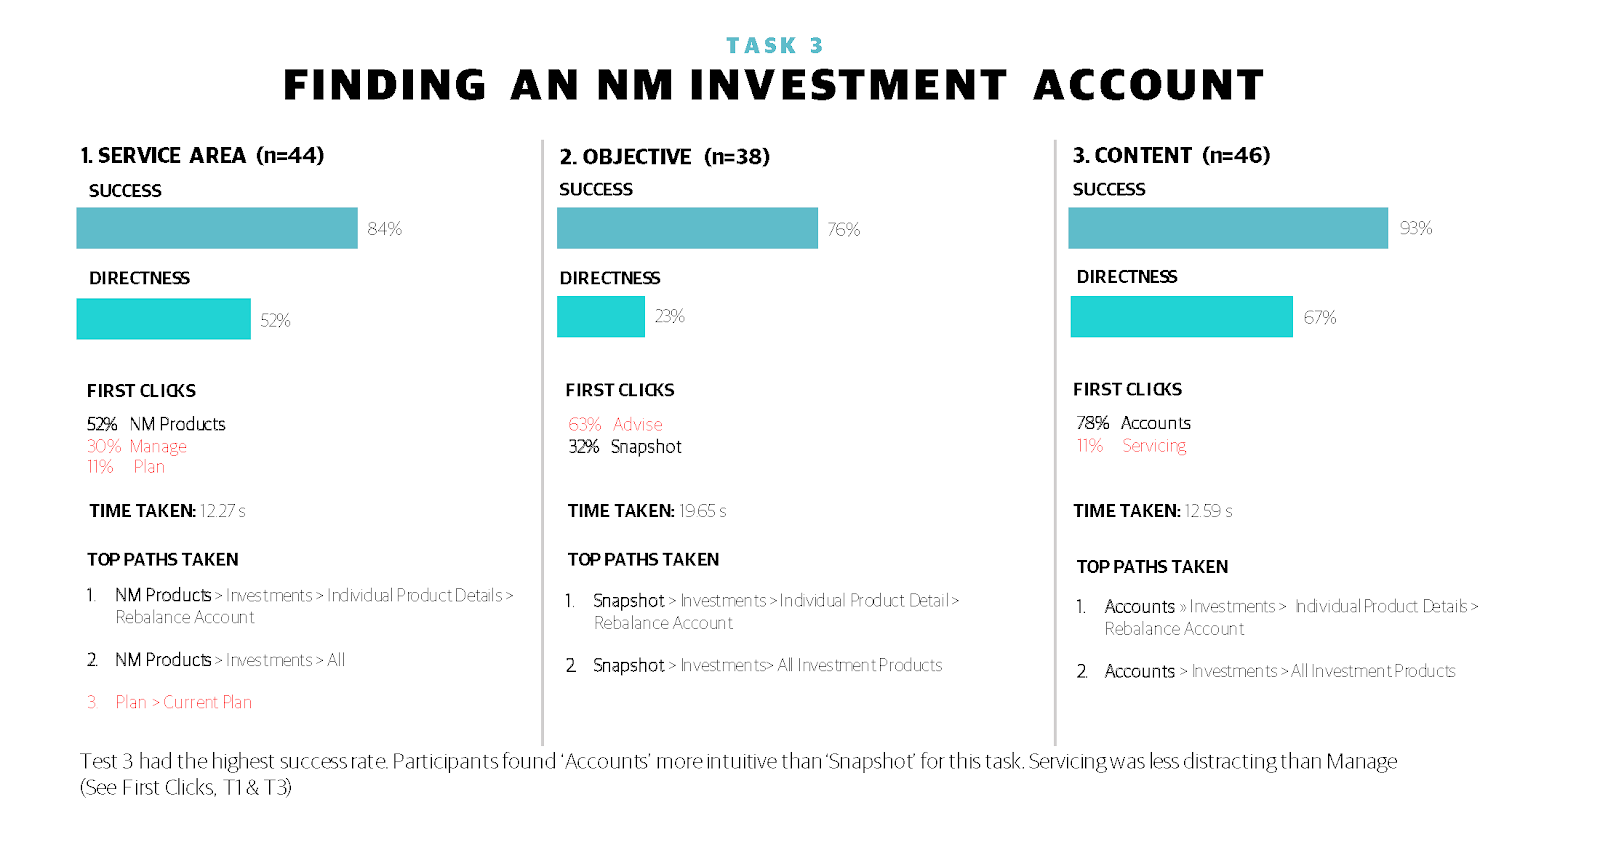 At the individual task level, organizing model 3 provided higher success rates with less clicking around. With these results, we choose to move forward with the organizing model based on around content types.